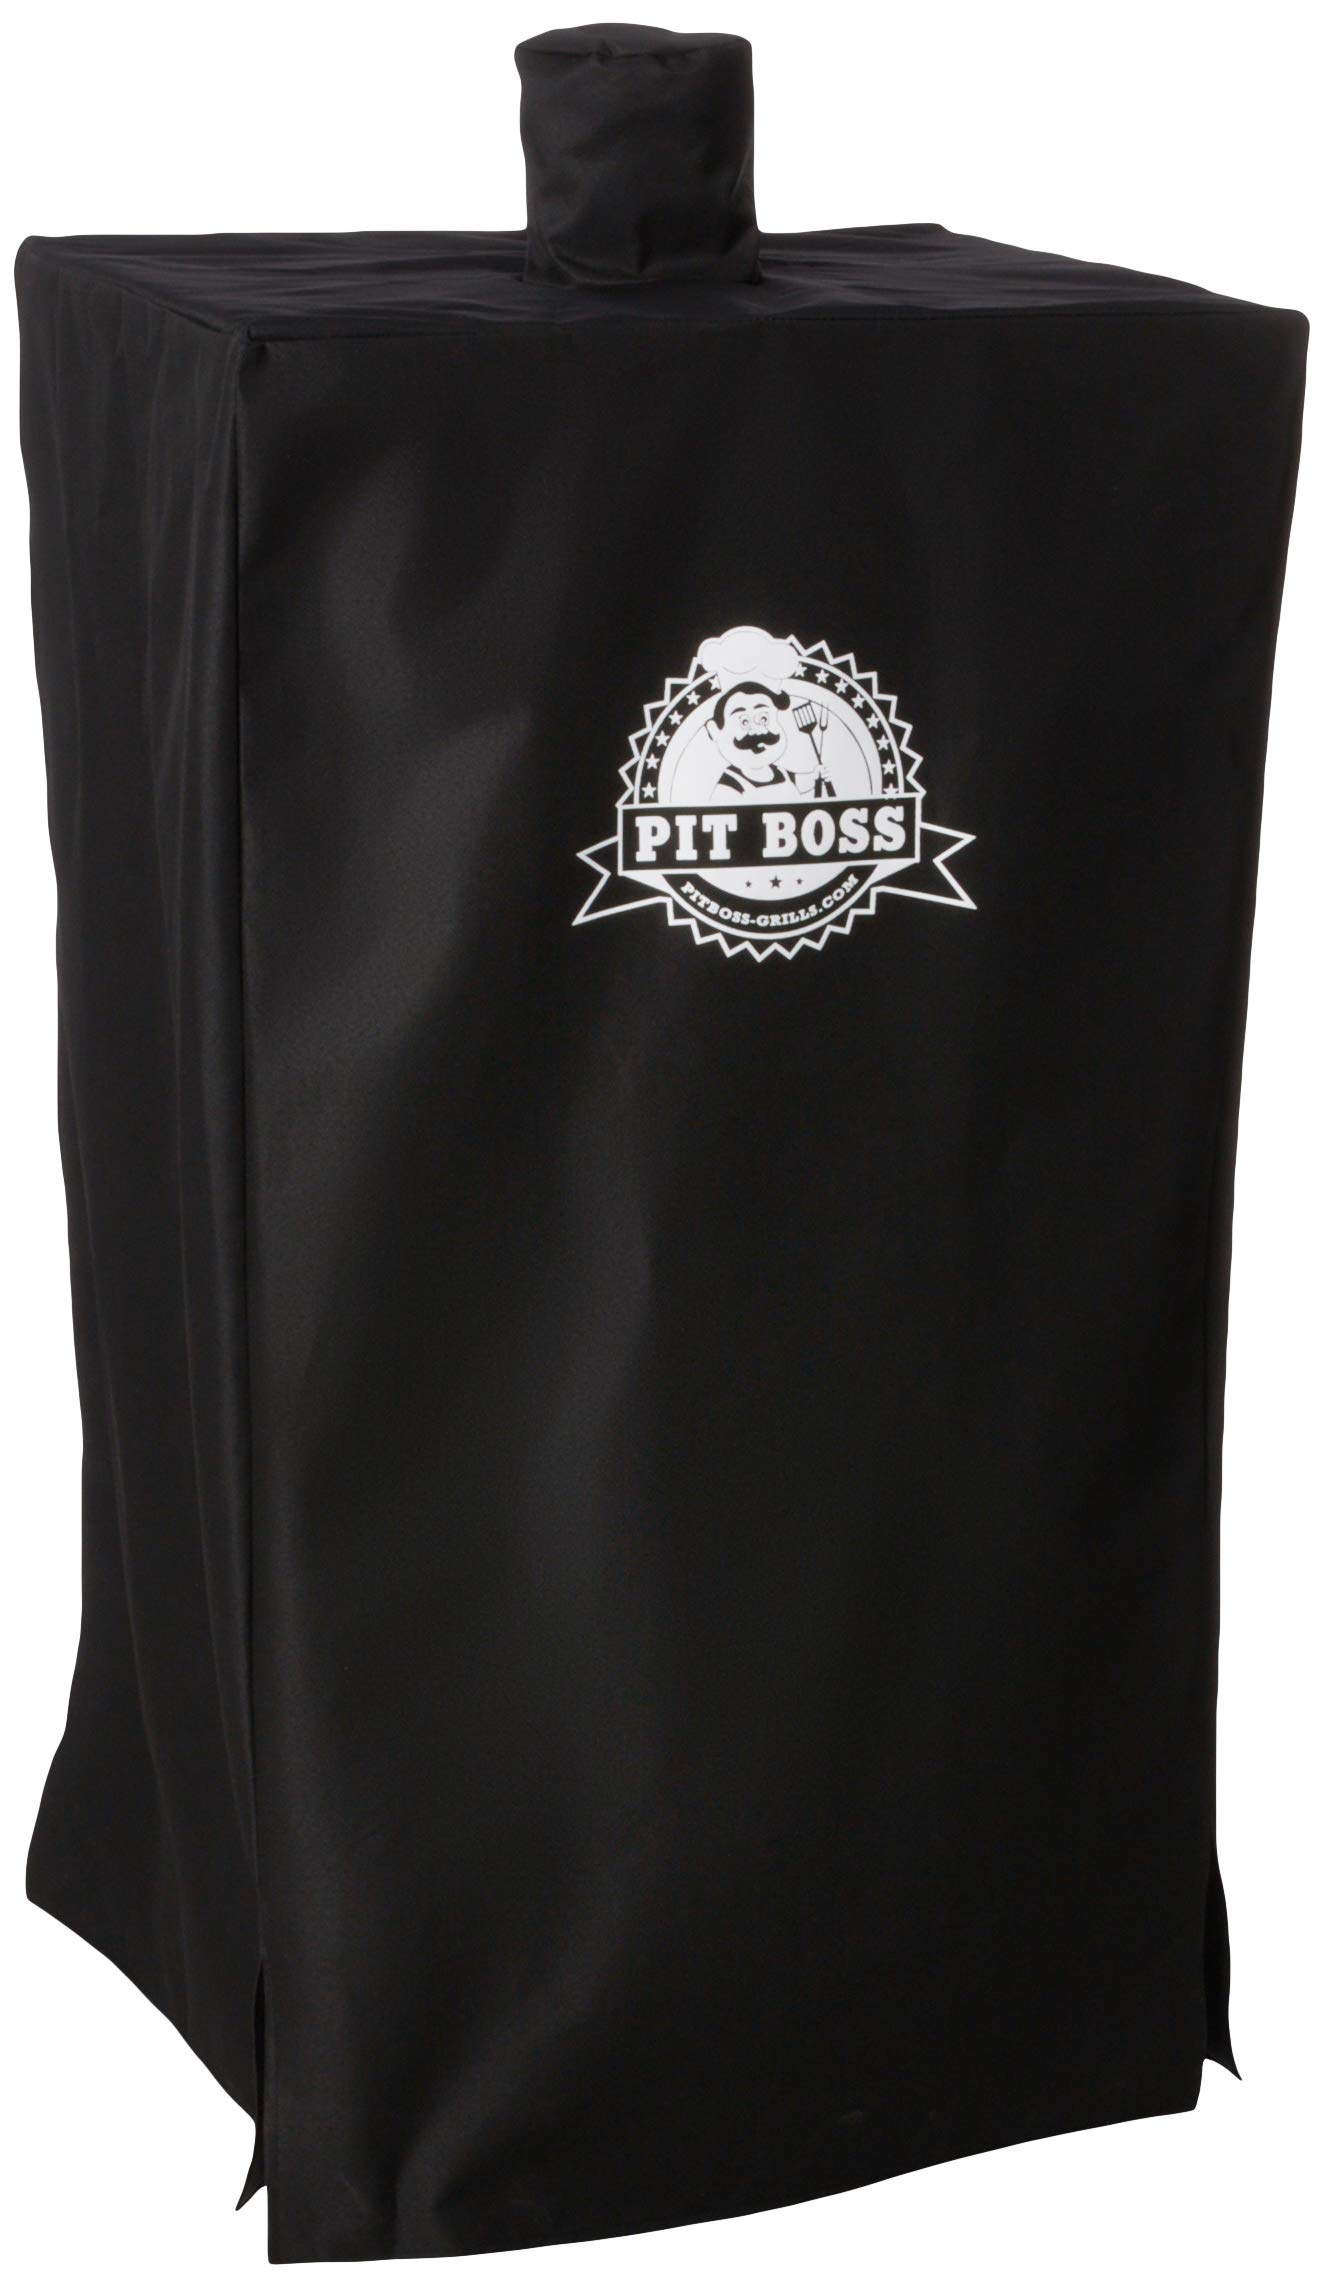 Pit Boss Grills 73550 Pellet Smoker Cover, Black by Pit Boss Grills